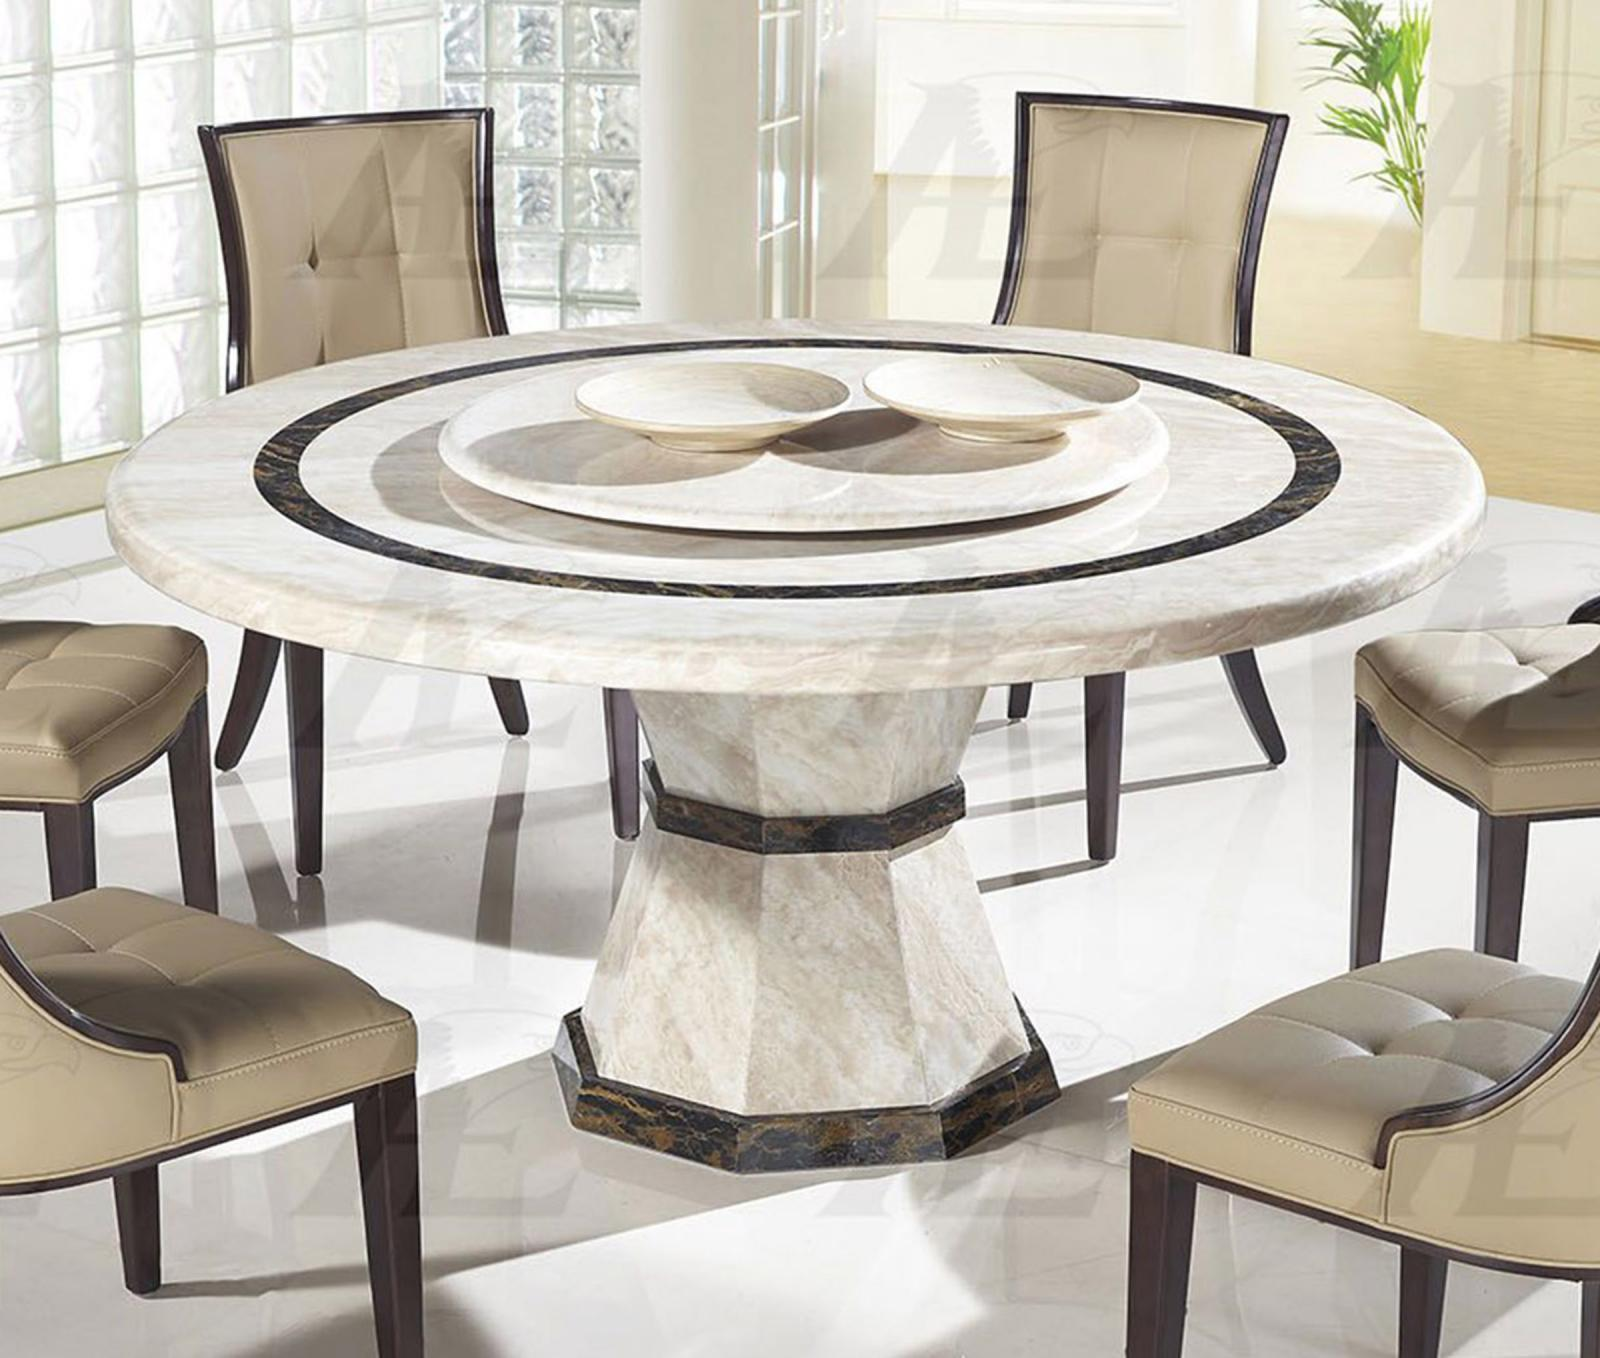 American eagle dt h38 beige marble top round dining table for Round stone top dining table